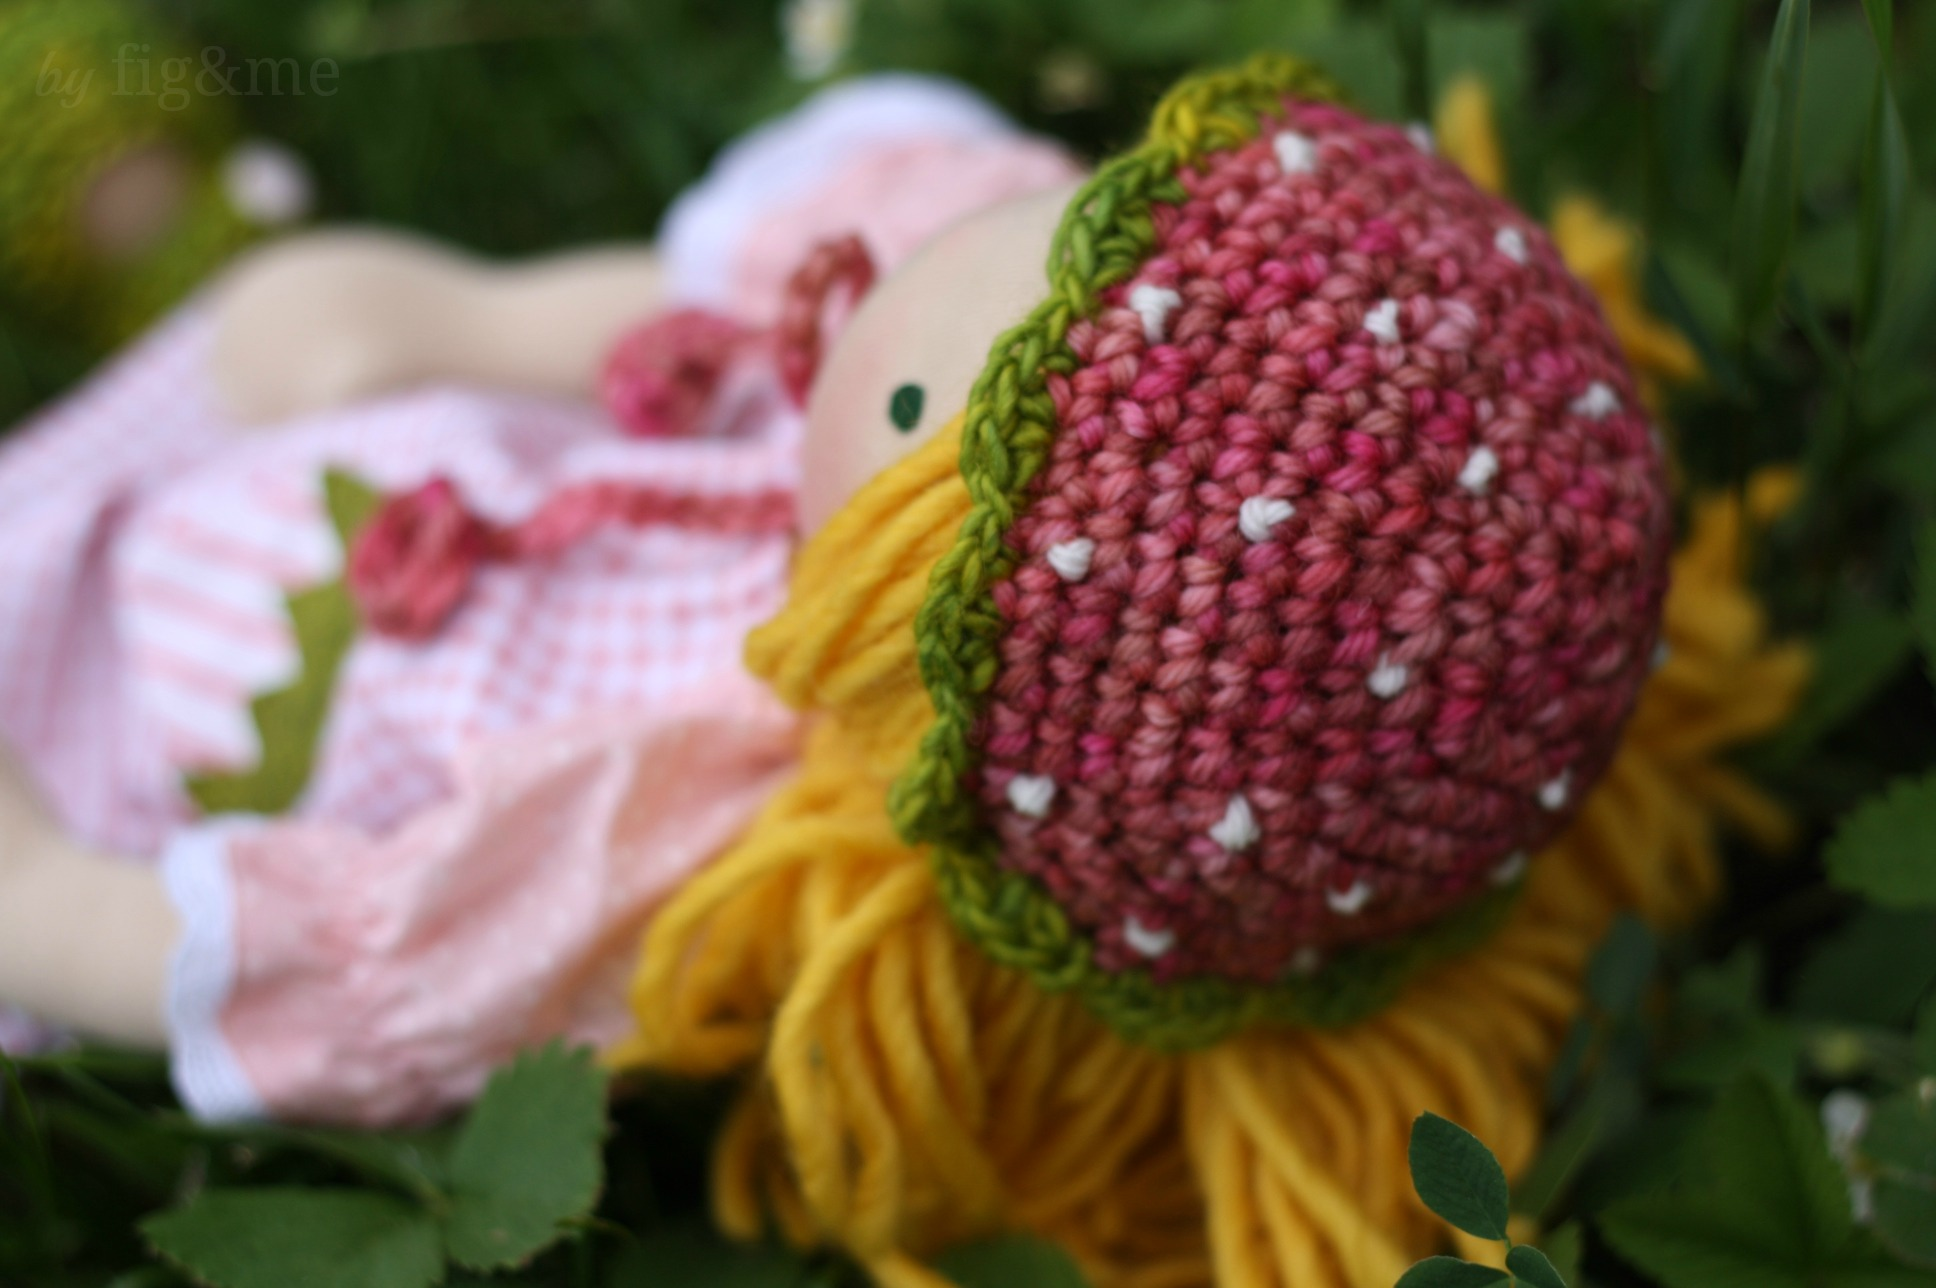 Strawberry wool hat, by fig and me.